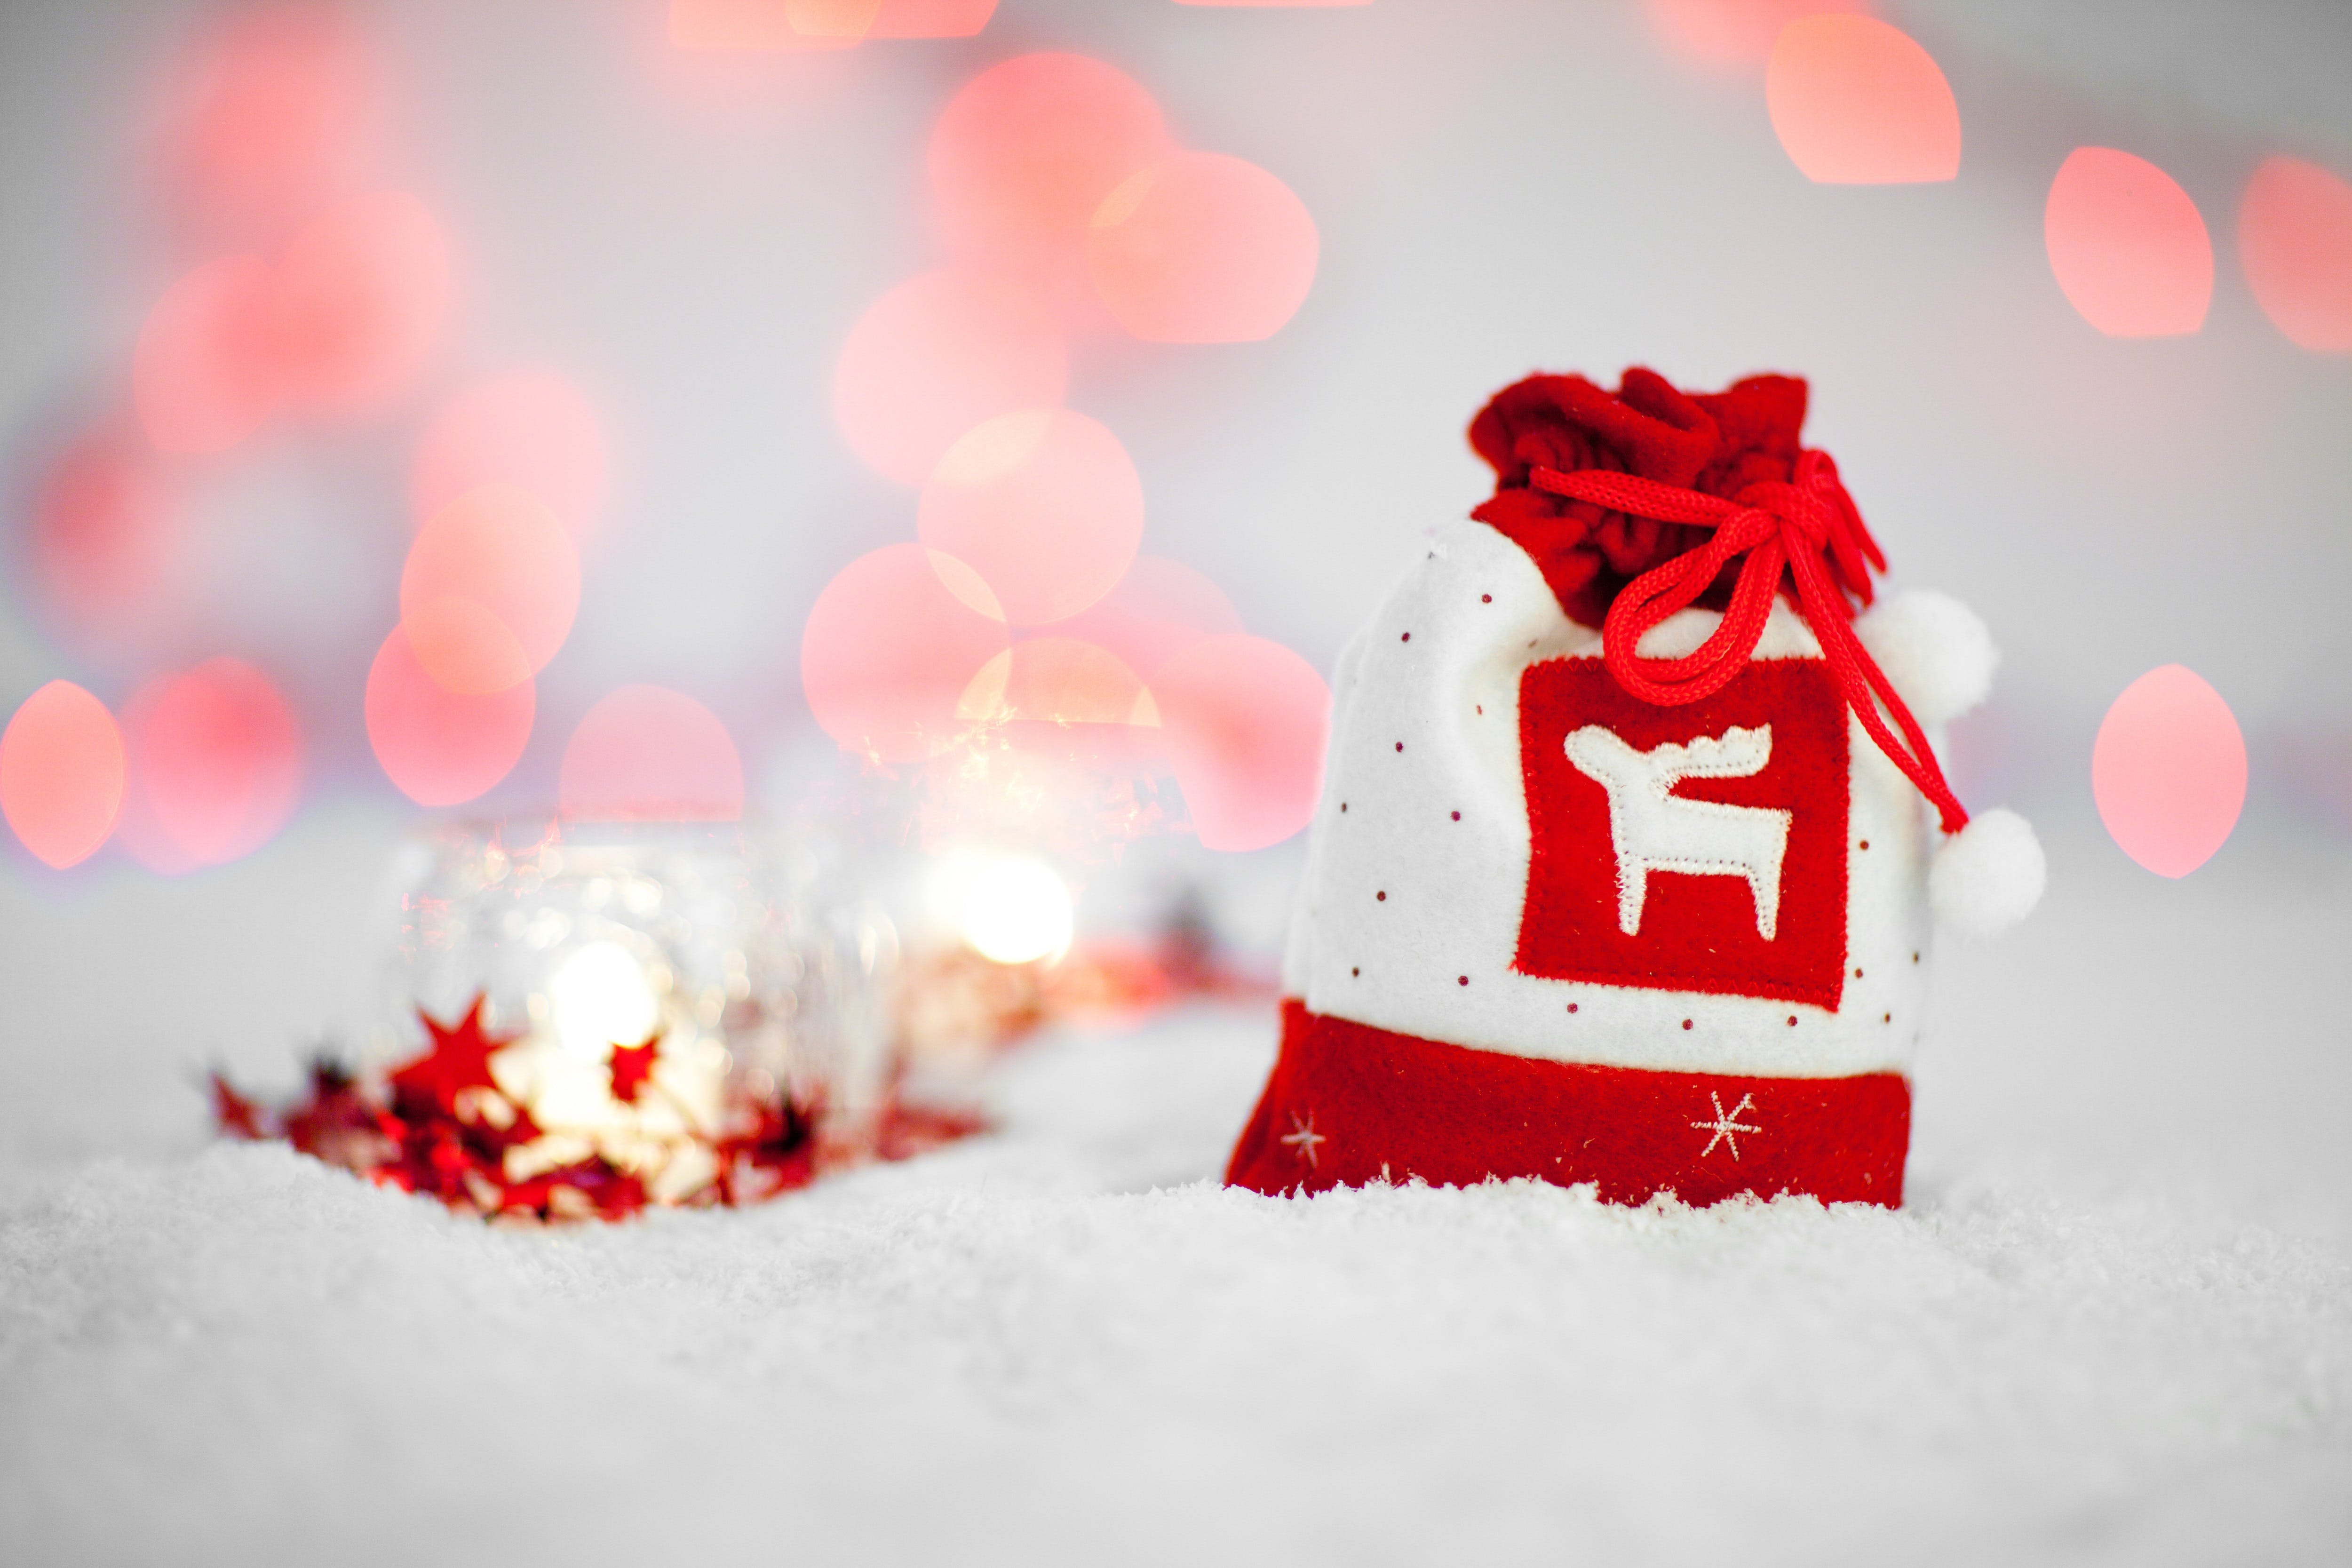 Red and White Christmas Pouch Bag on White Textile